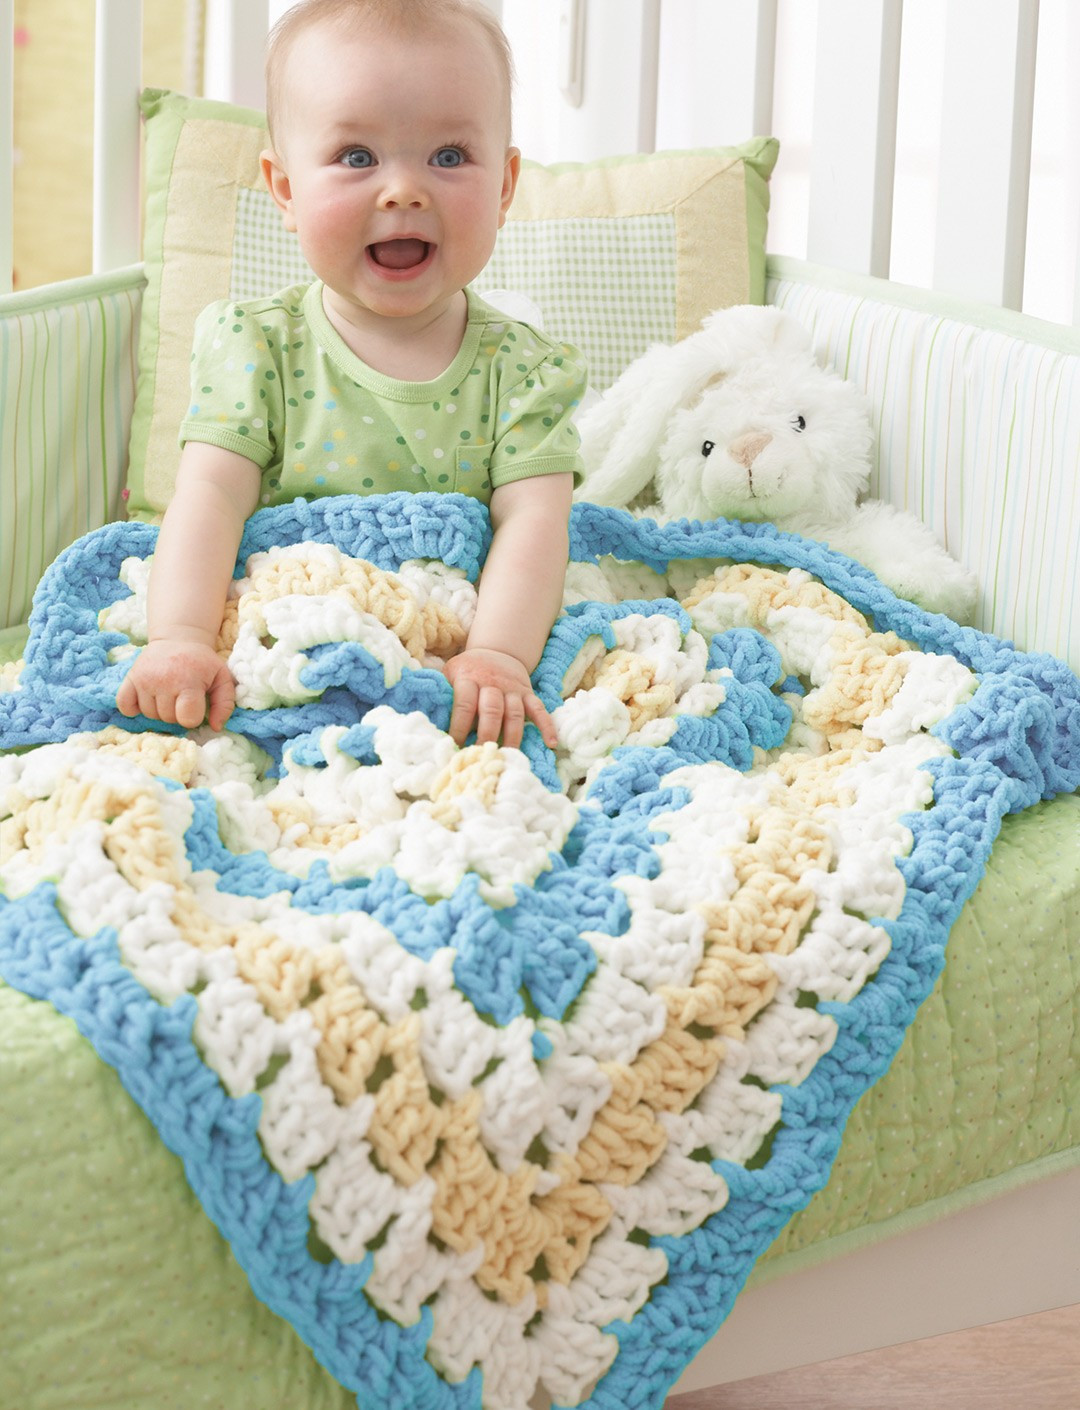 Bernat Blanket Patterns Best Of Bernat From the Middle Baby Blanket Crochet Pattern Of Perfect 47 Photos Bernat Blanket Patterns